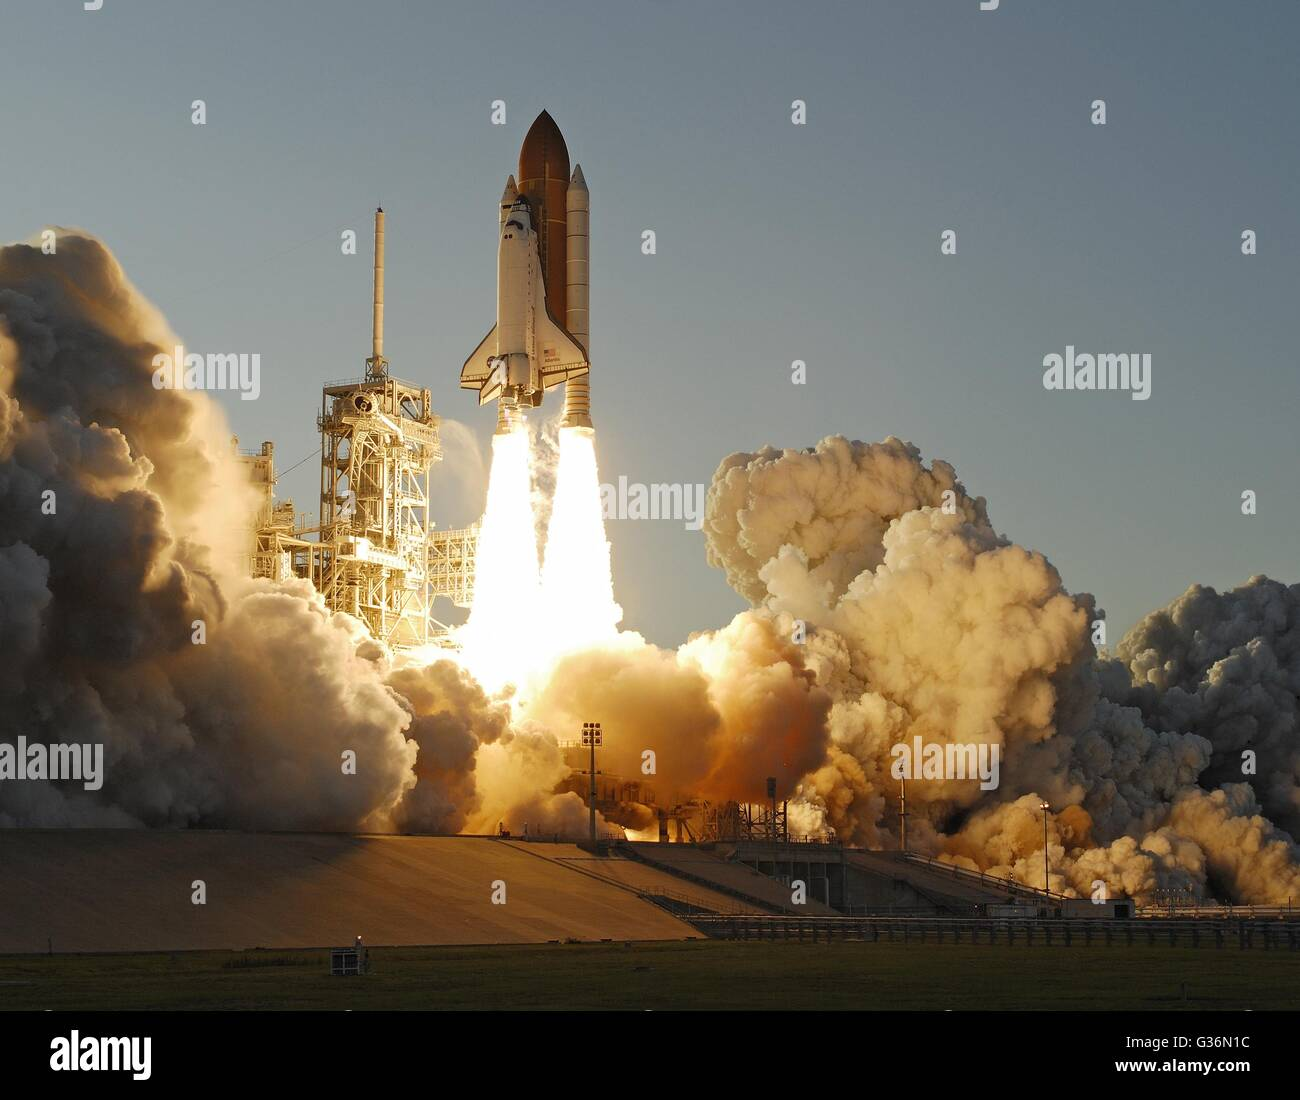 Space Shuttle Atlantis STS-117 mission lifts-off from the NASA's Kennedy Space Center June 8, 2007 in Cape Canaveral, - Stock Image